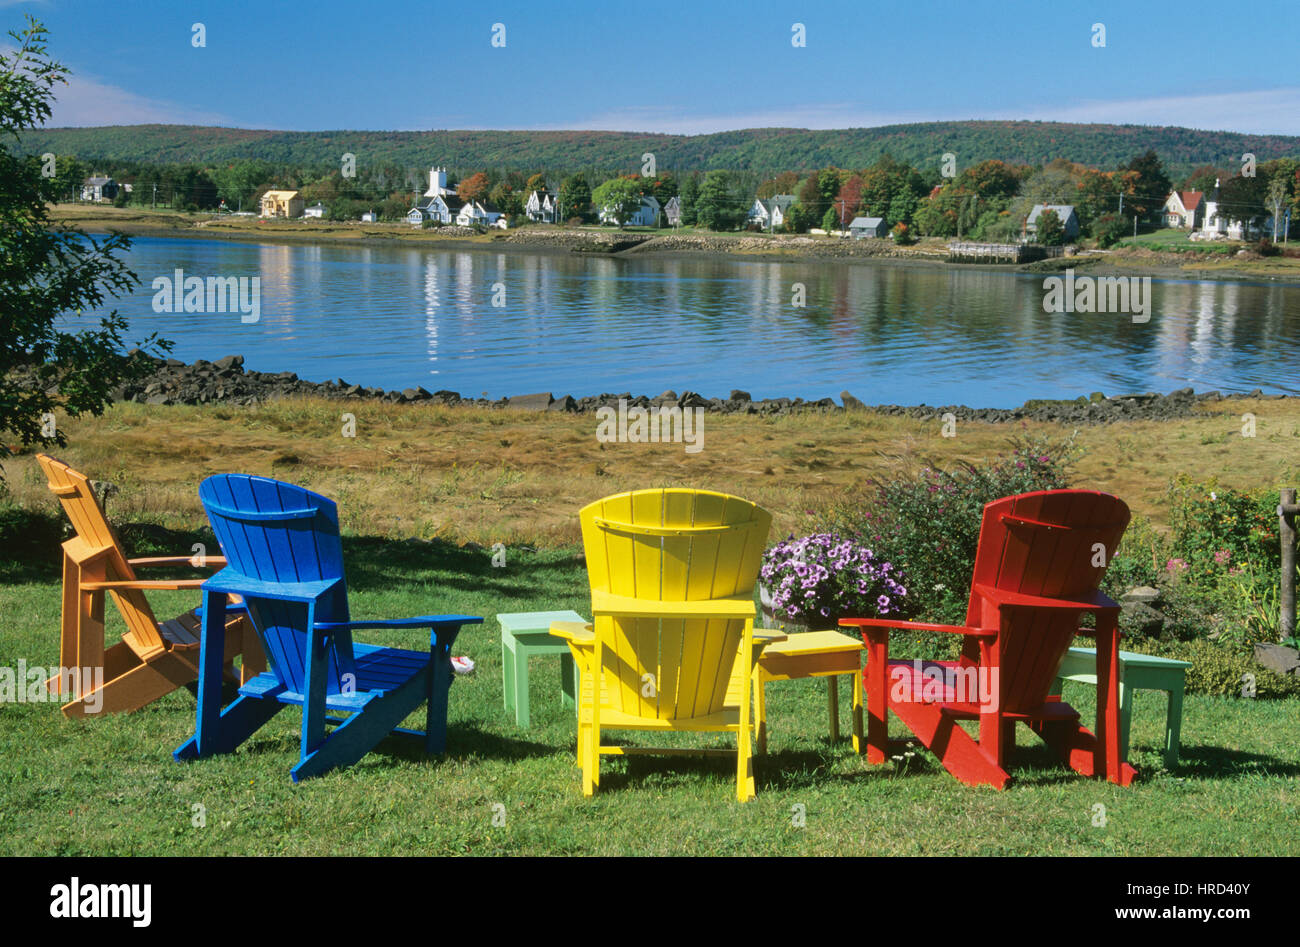 new river adirondack chairs steel chair keychain annapolis valley stock photos and